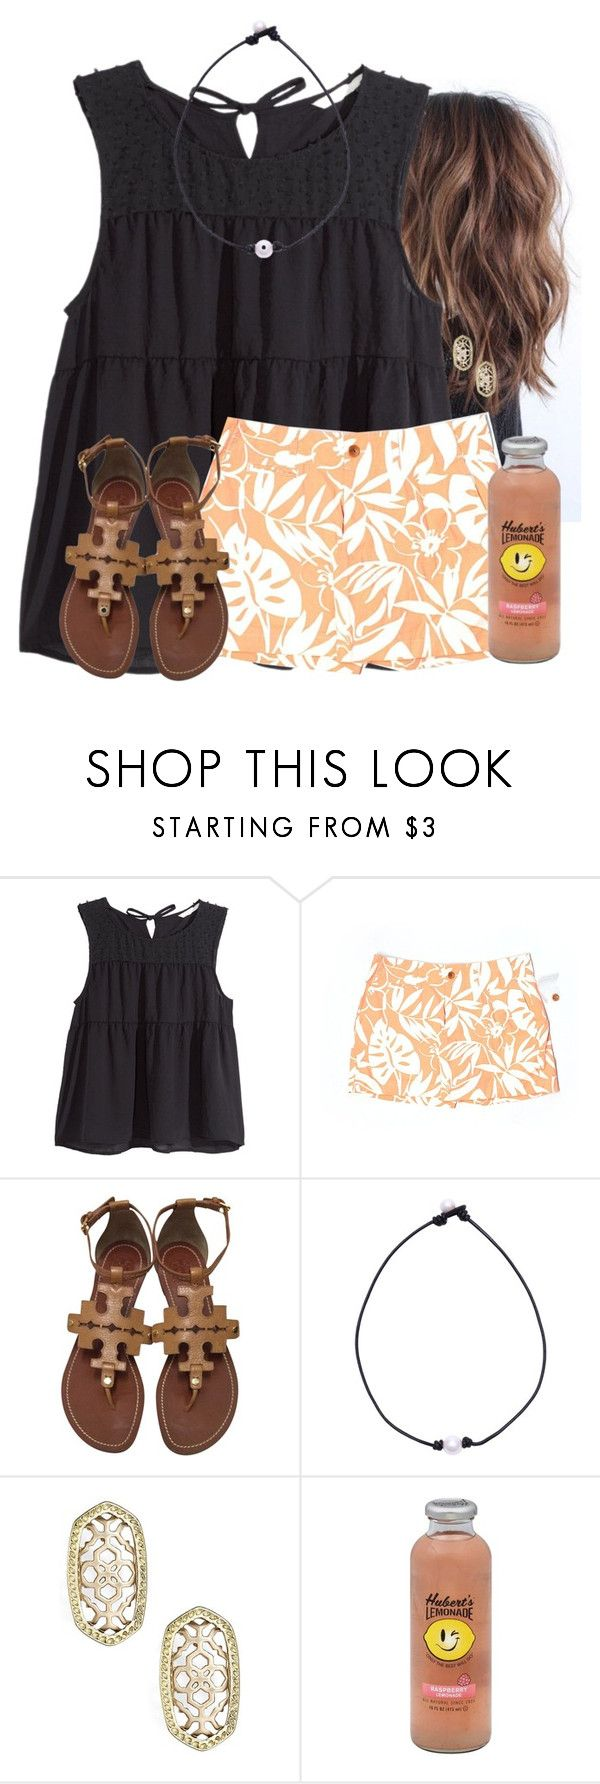 """""""EDSFTG"""" by flroasburn ❤ liked on Polyvore featuring H&M, Vineyard Vines, Tory Burch, Kendra Scott and Hansen"""